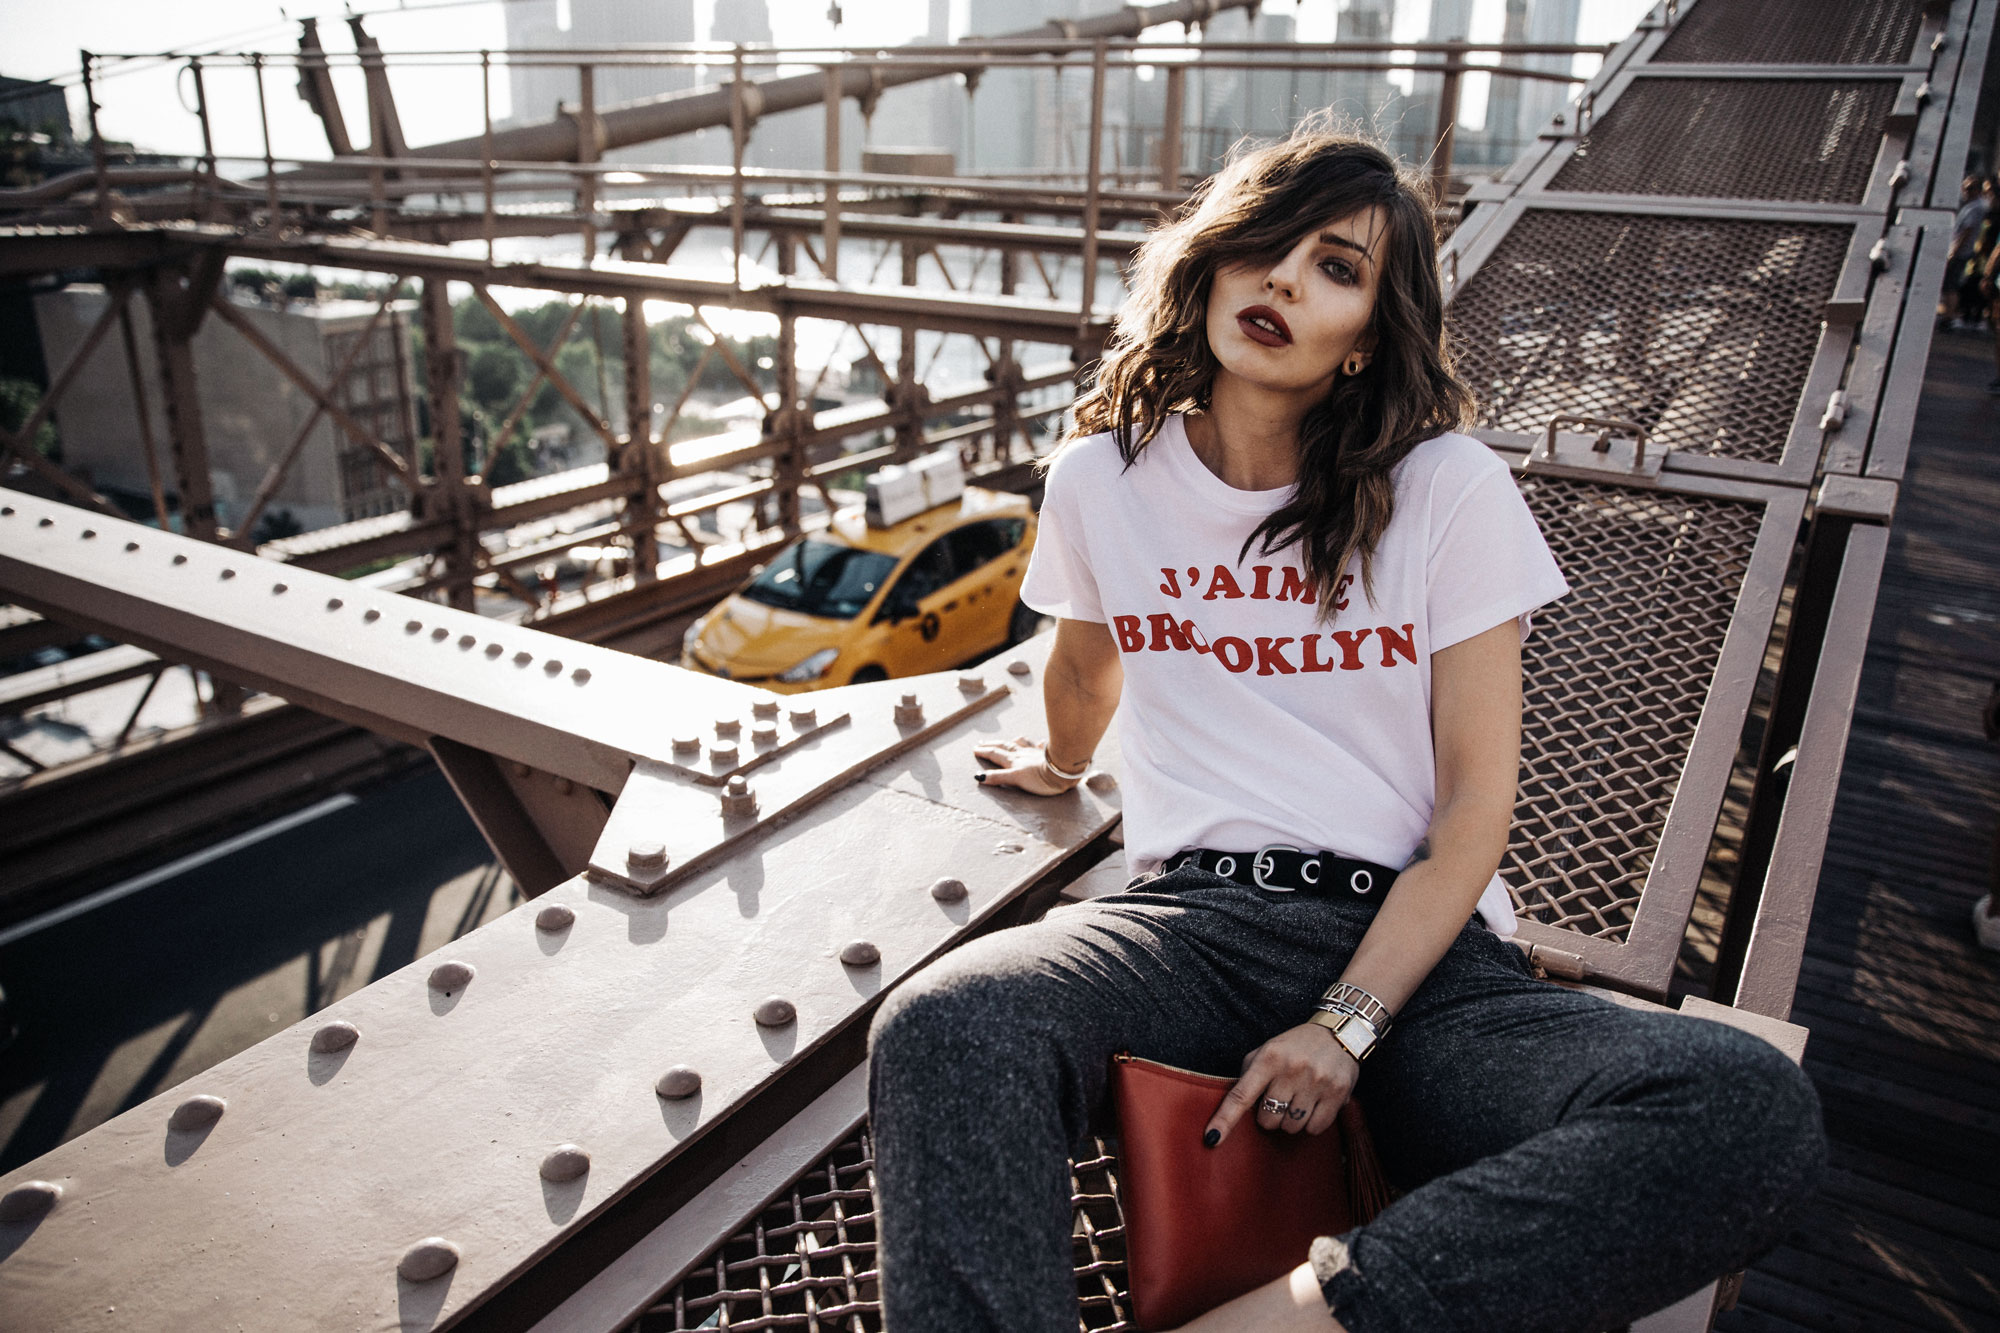 Brooklyn Bridge, New York | Statement Shirt | Blogger Fashion Editorial Summer Shooting | Dumbo | style: happy, freedom, college, edgy, sexy